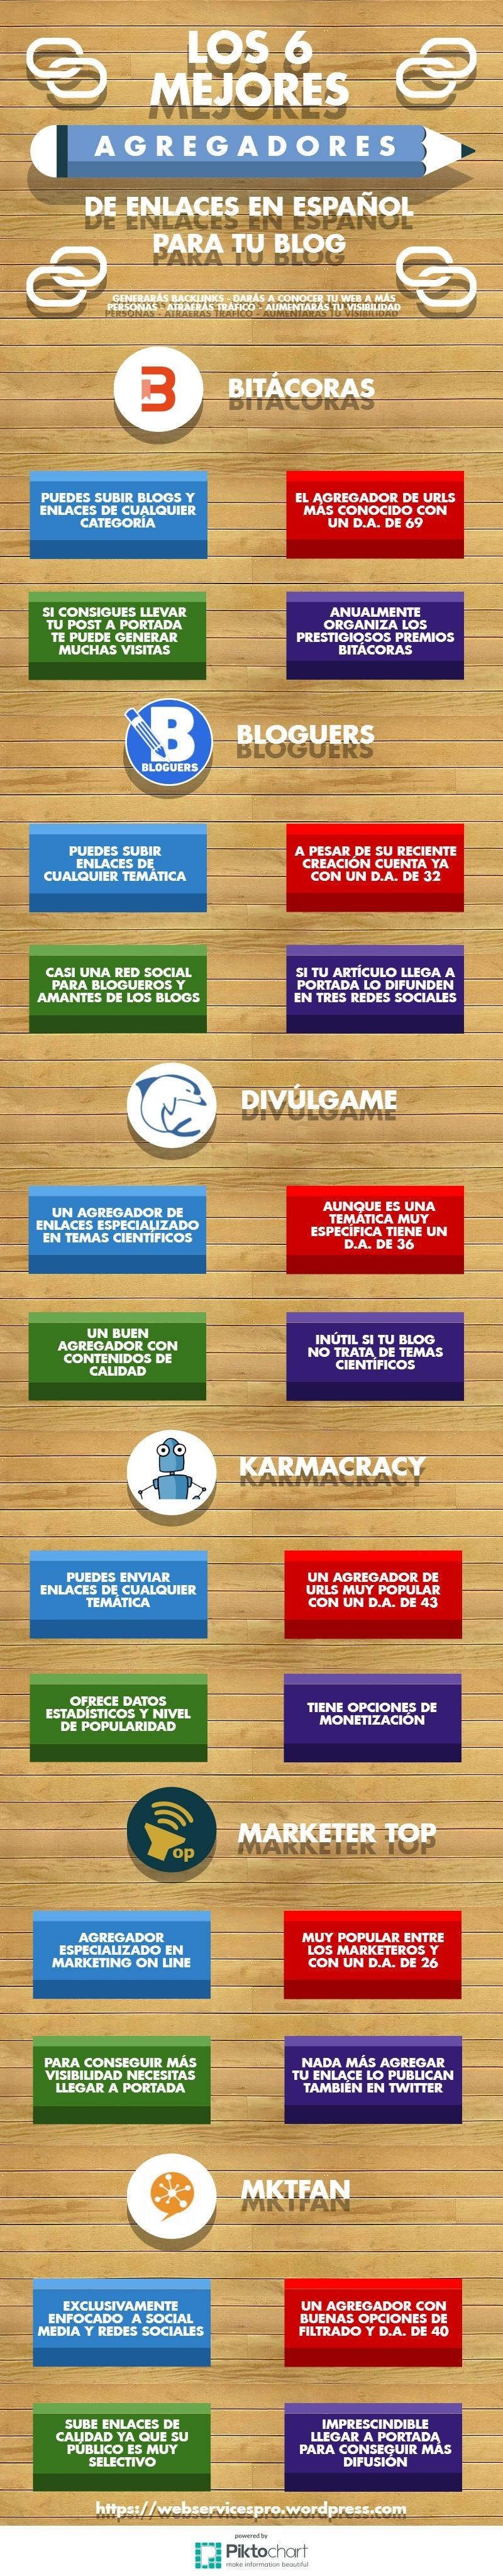 6-agregadores-enlaces-blog-infografia